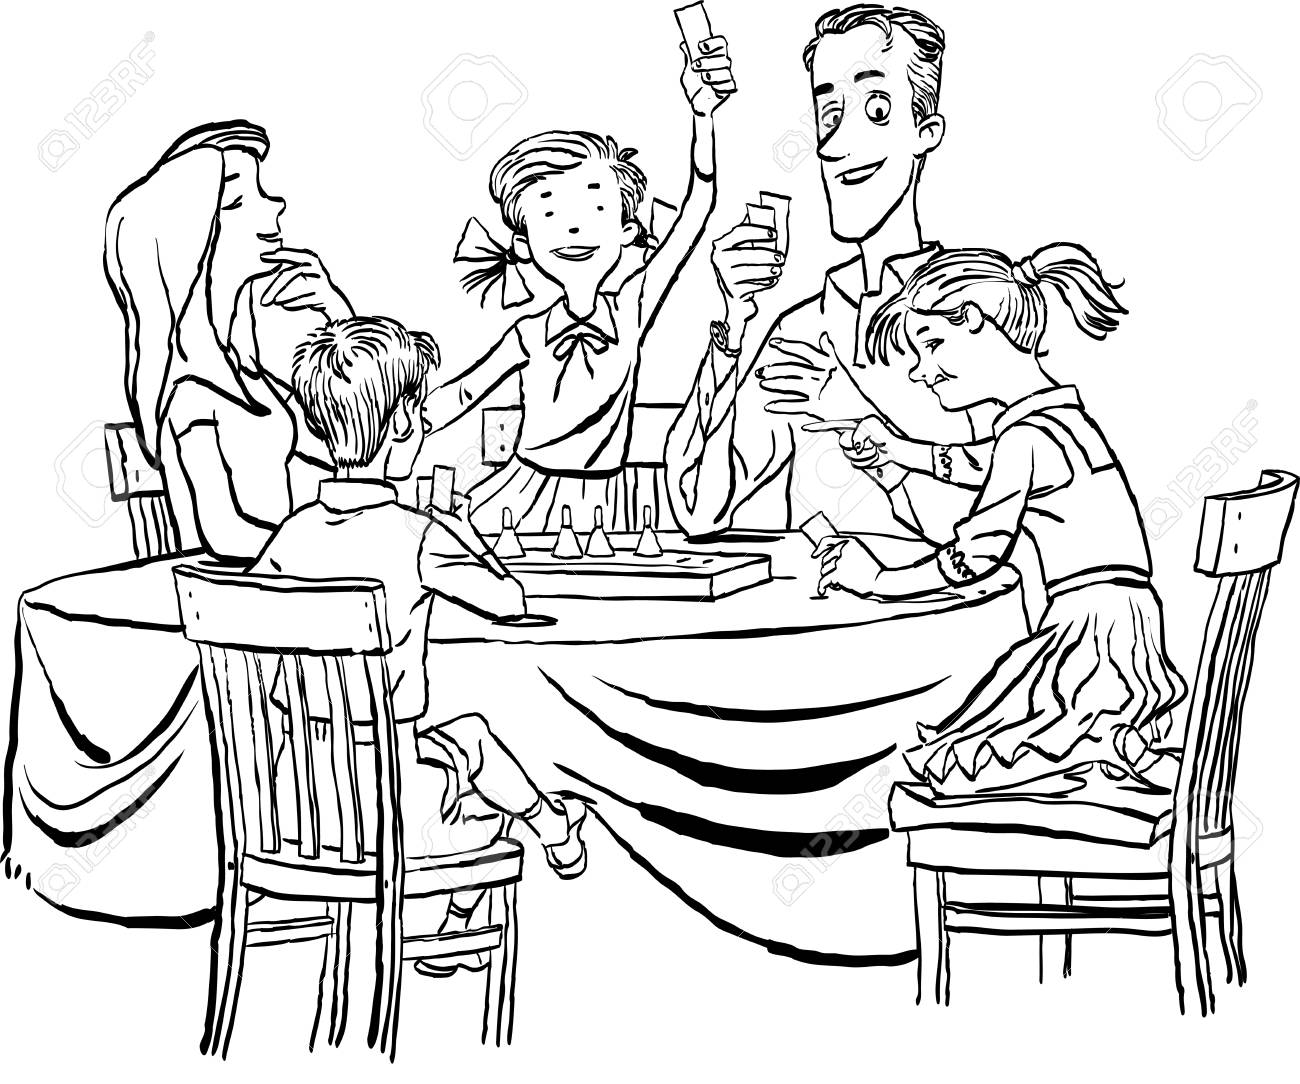 Parents With Their Little Children Playing Together Board Game Royalty Free Cliparts Vectors And Stock Illustration Image 109756450